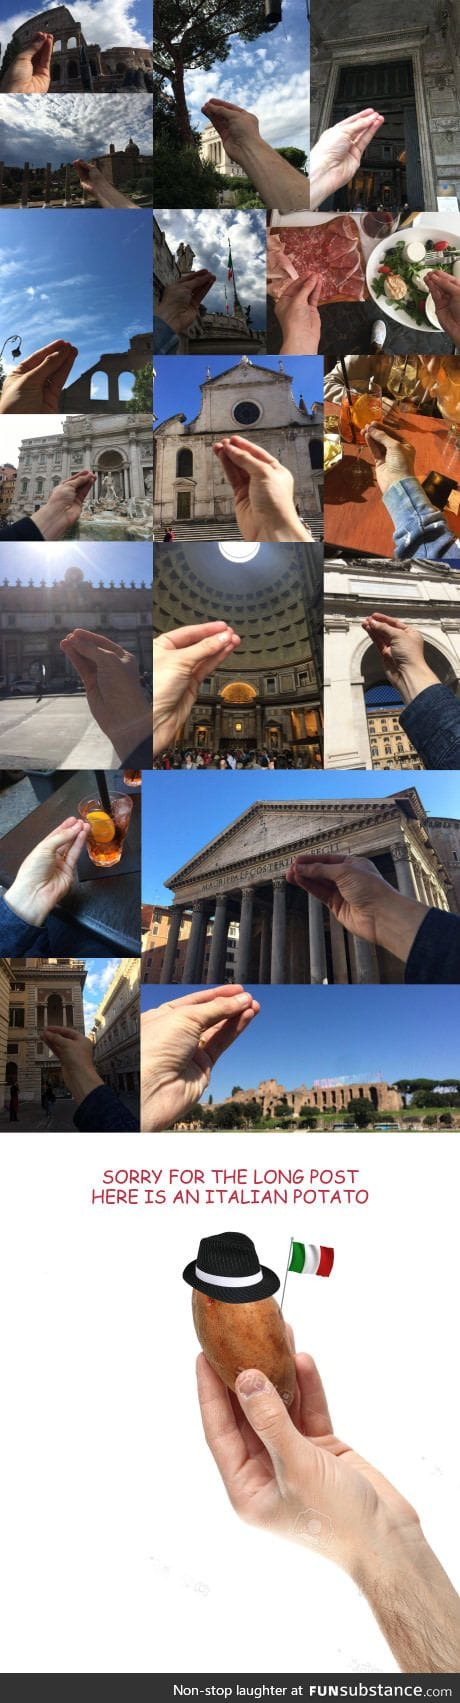 How visiting Italy looks like